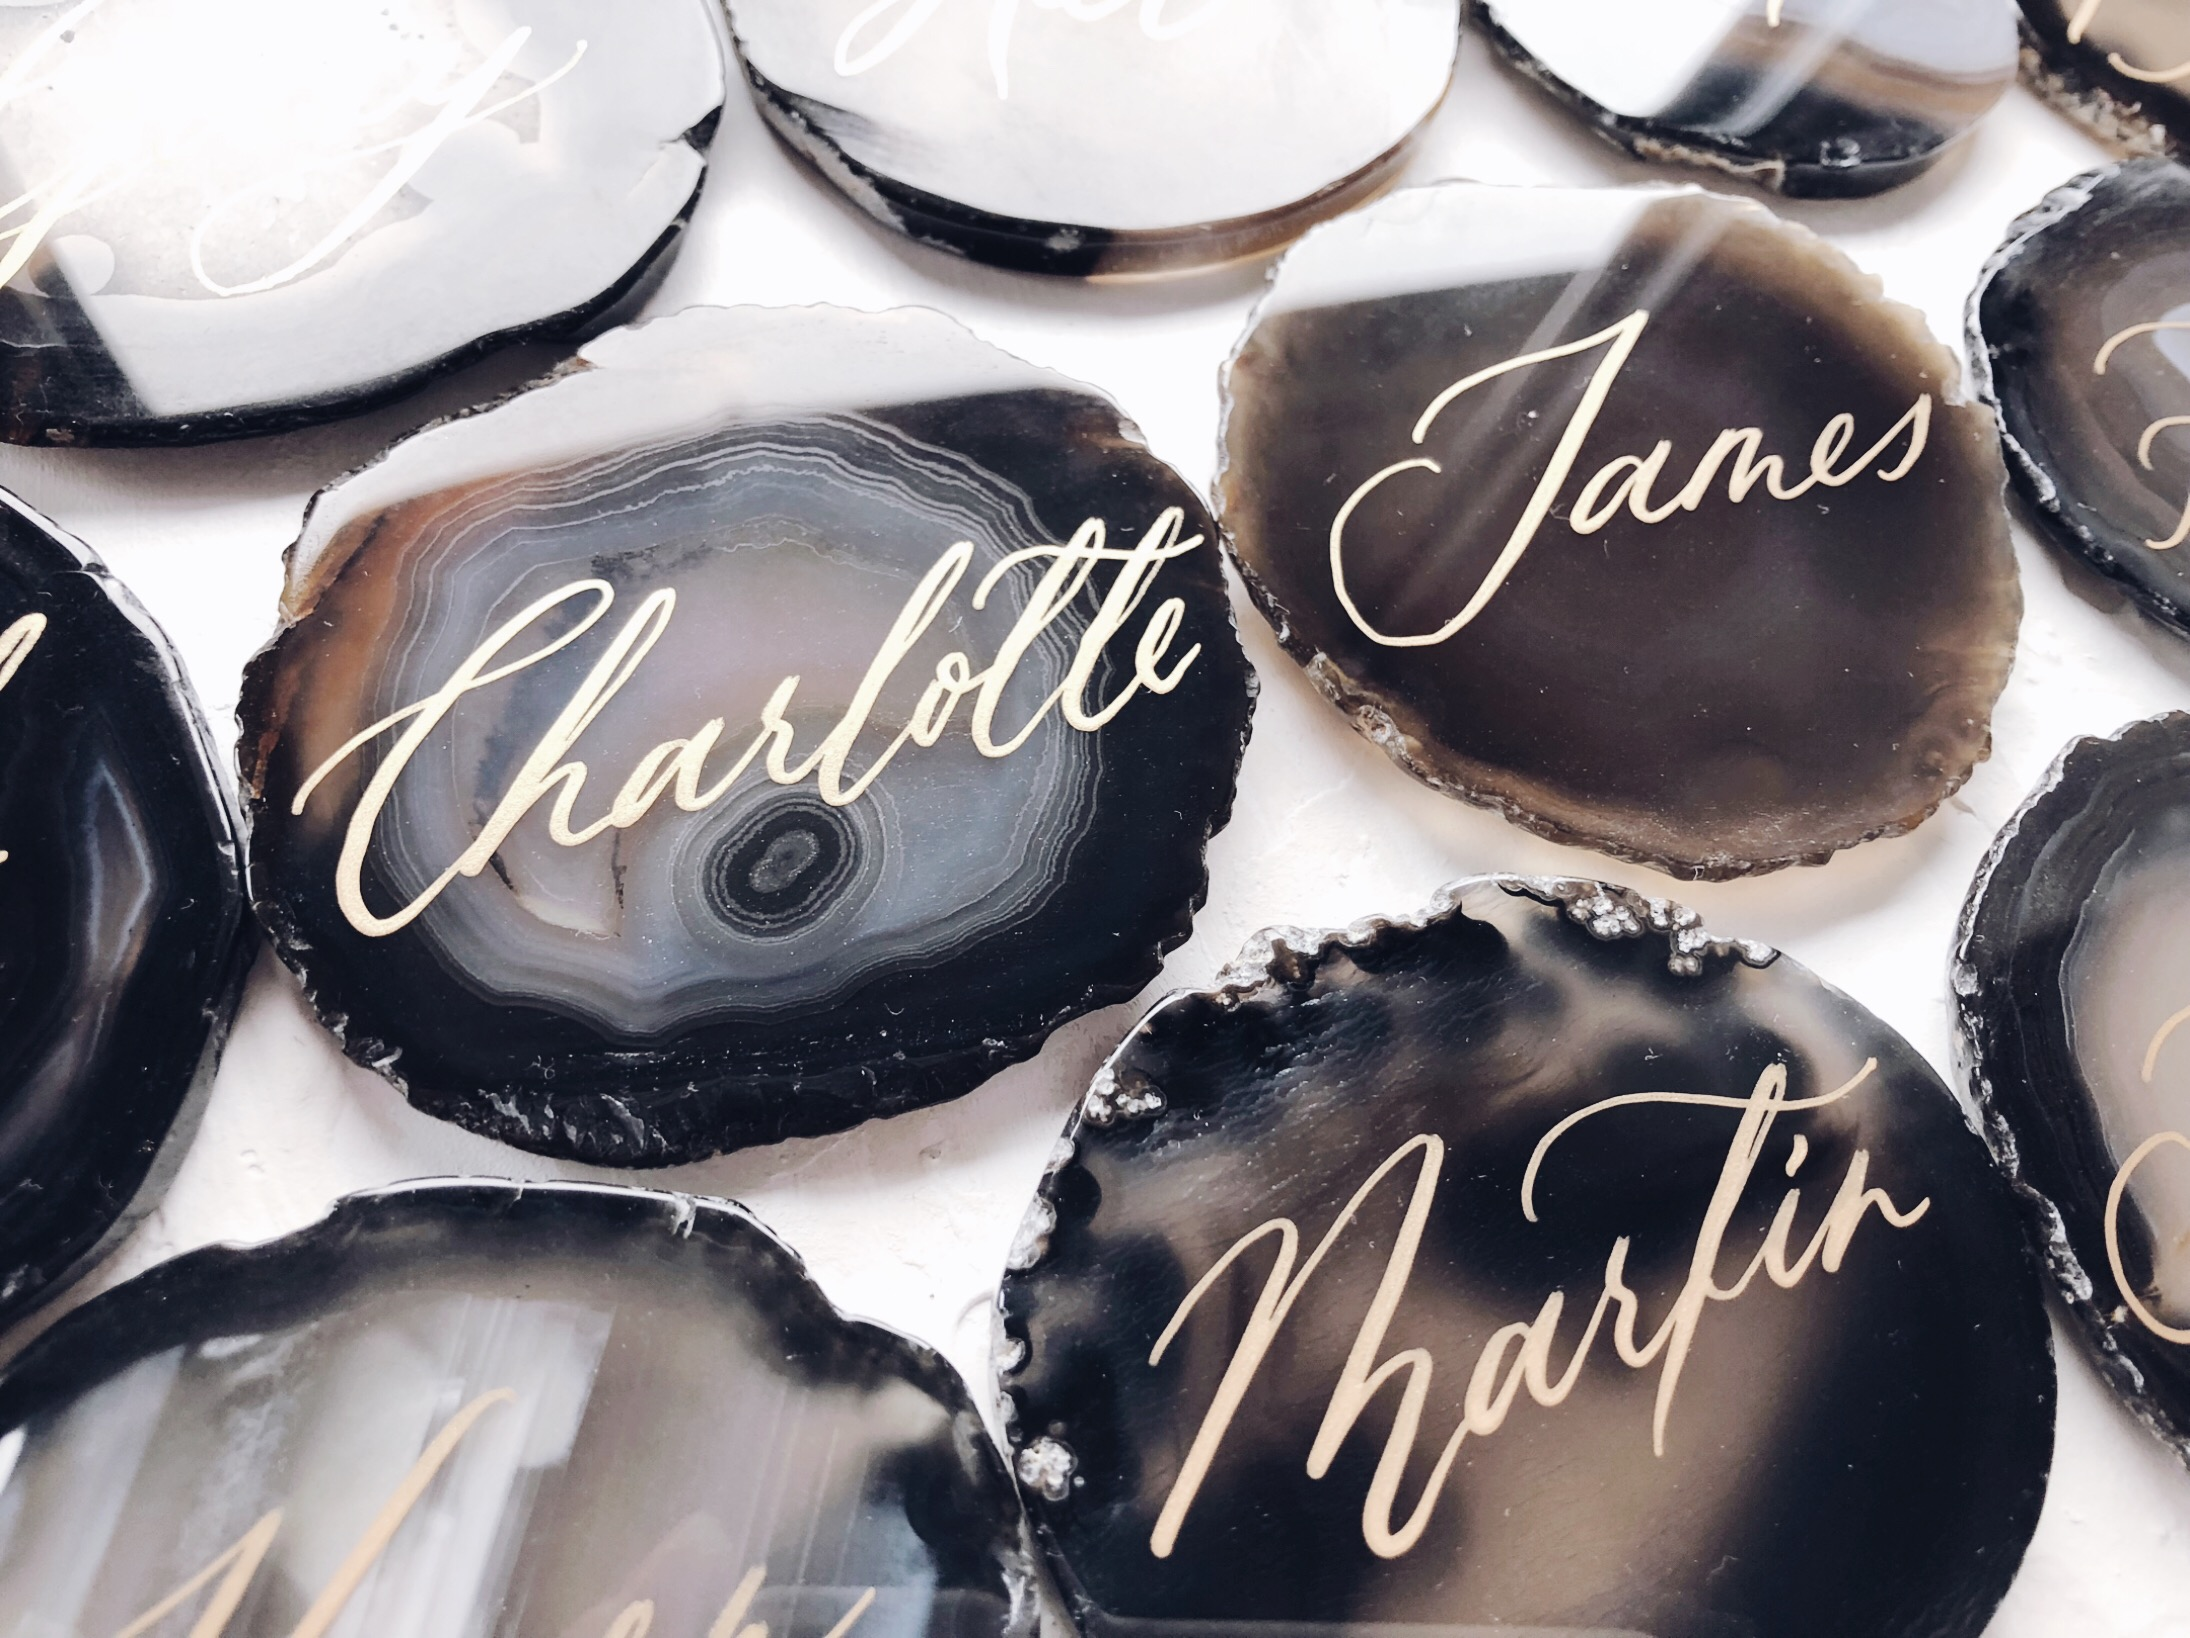 Black agate with gold calligraphy